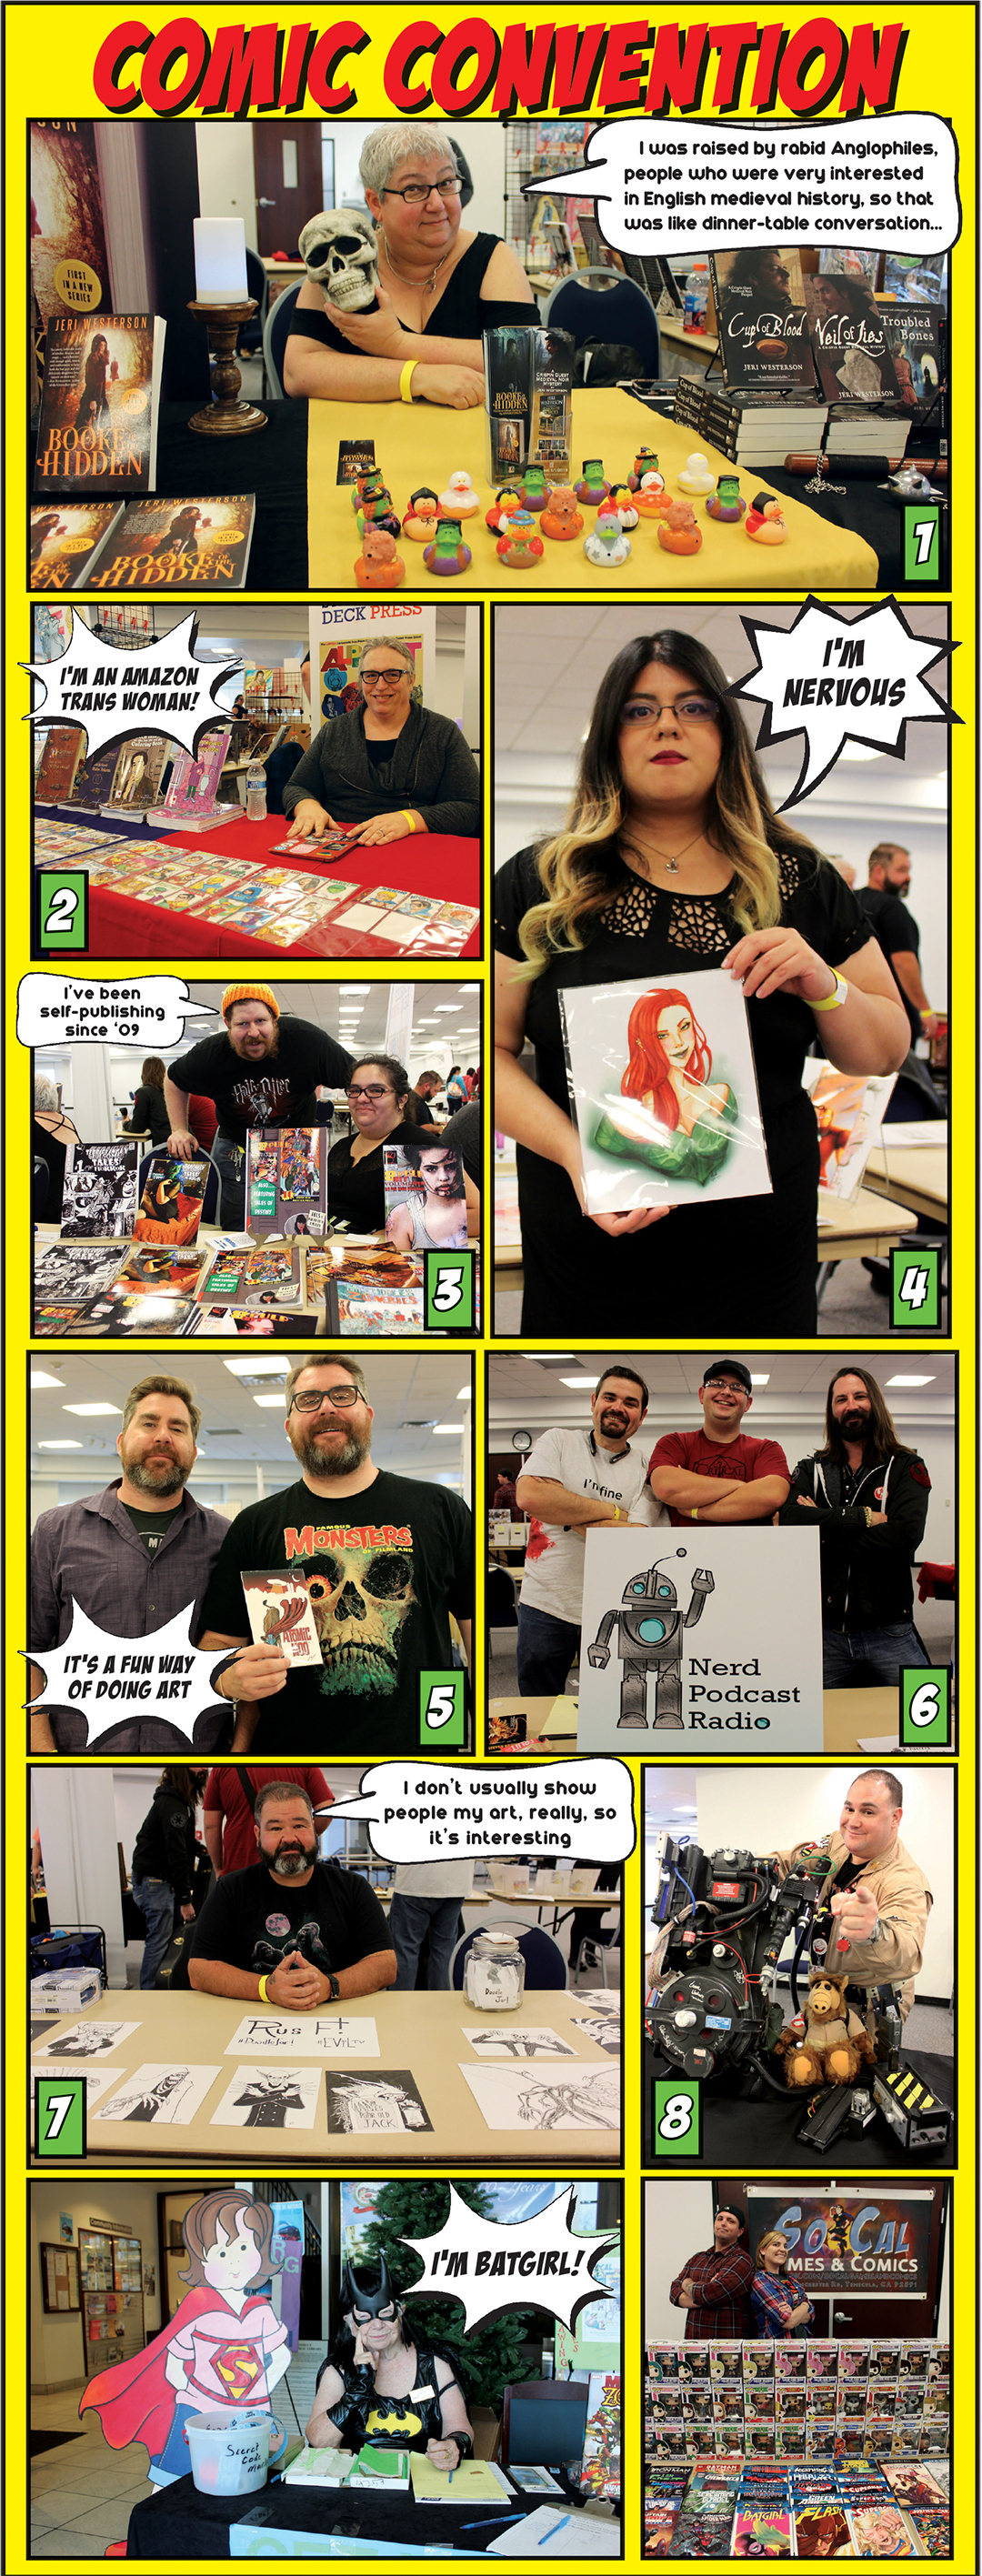 <strong>For the first time a comic convention hosted in Hemet</strong>